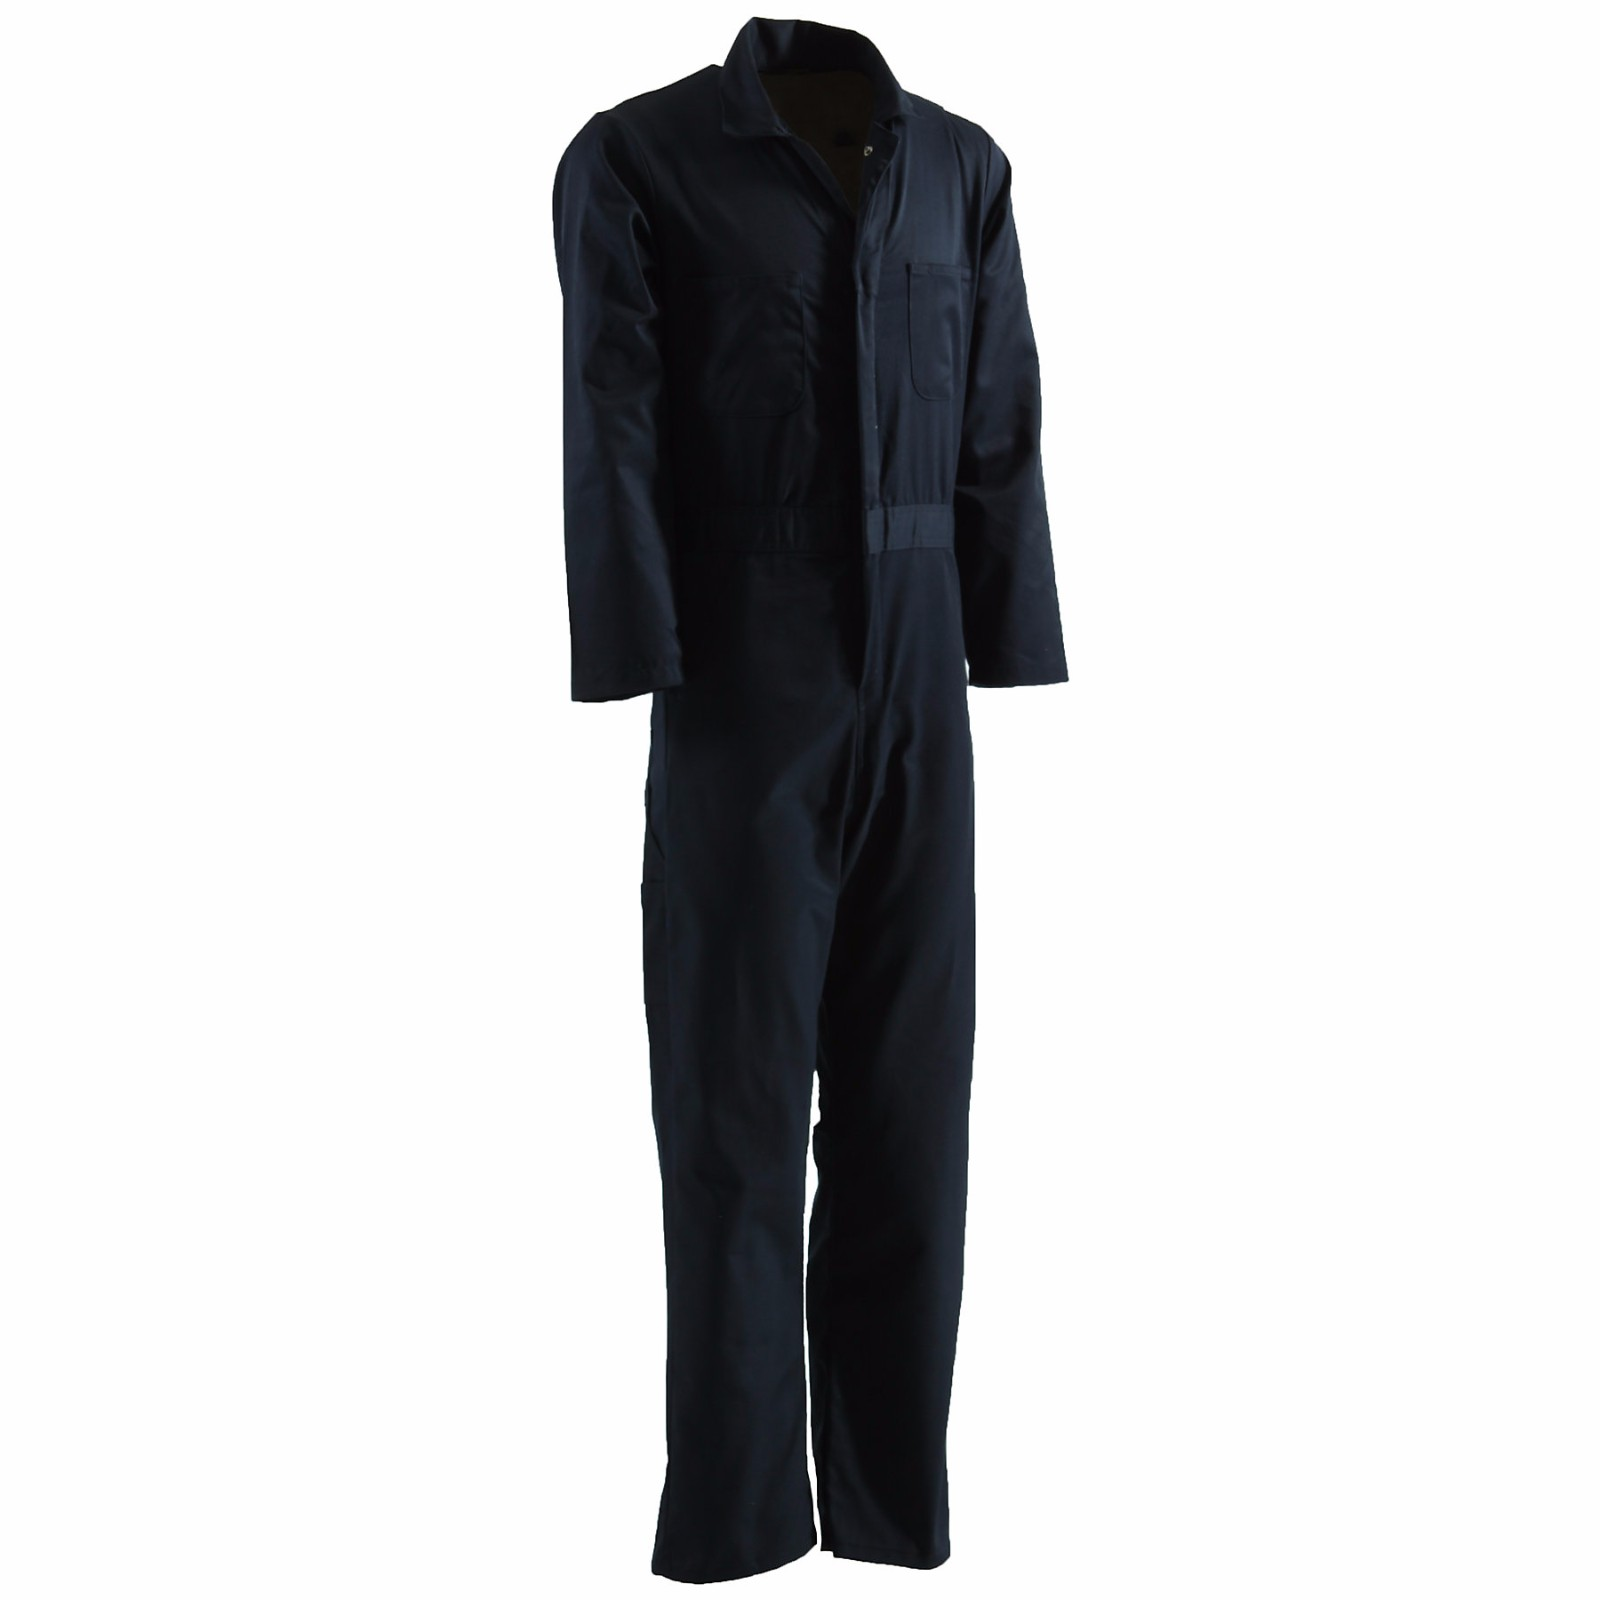 Berne Standard Unlined Coverall Size 2XLR 54R Regular (Navy) by Berne